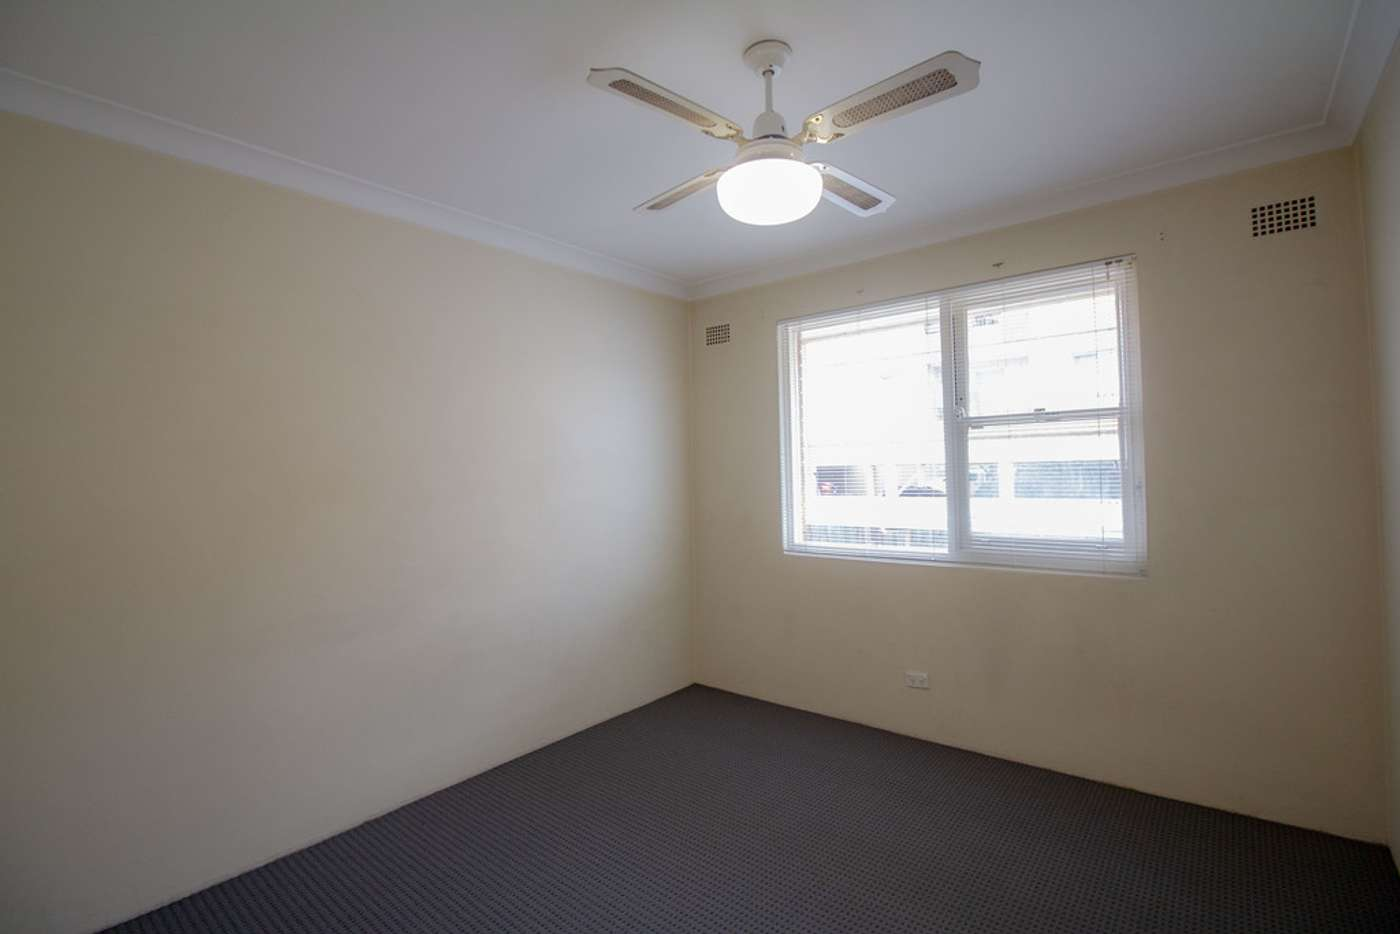 Sixth view of Homely apartment listing, 6/47 Harris Street, Harris Park NSW 2150